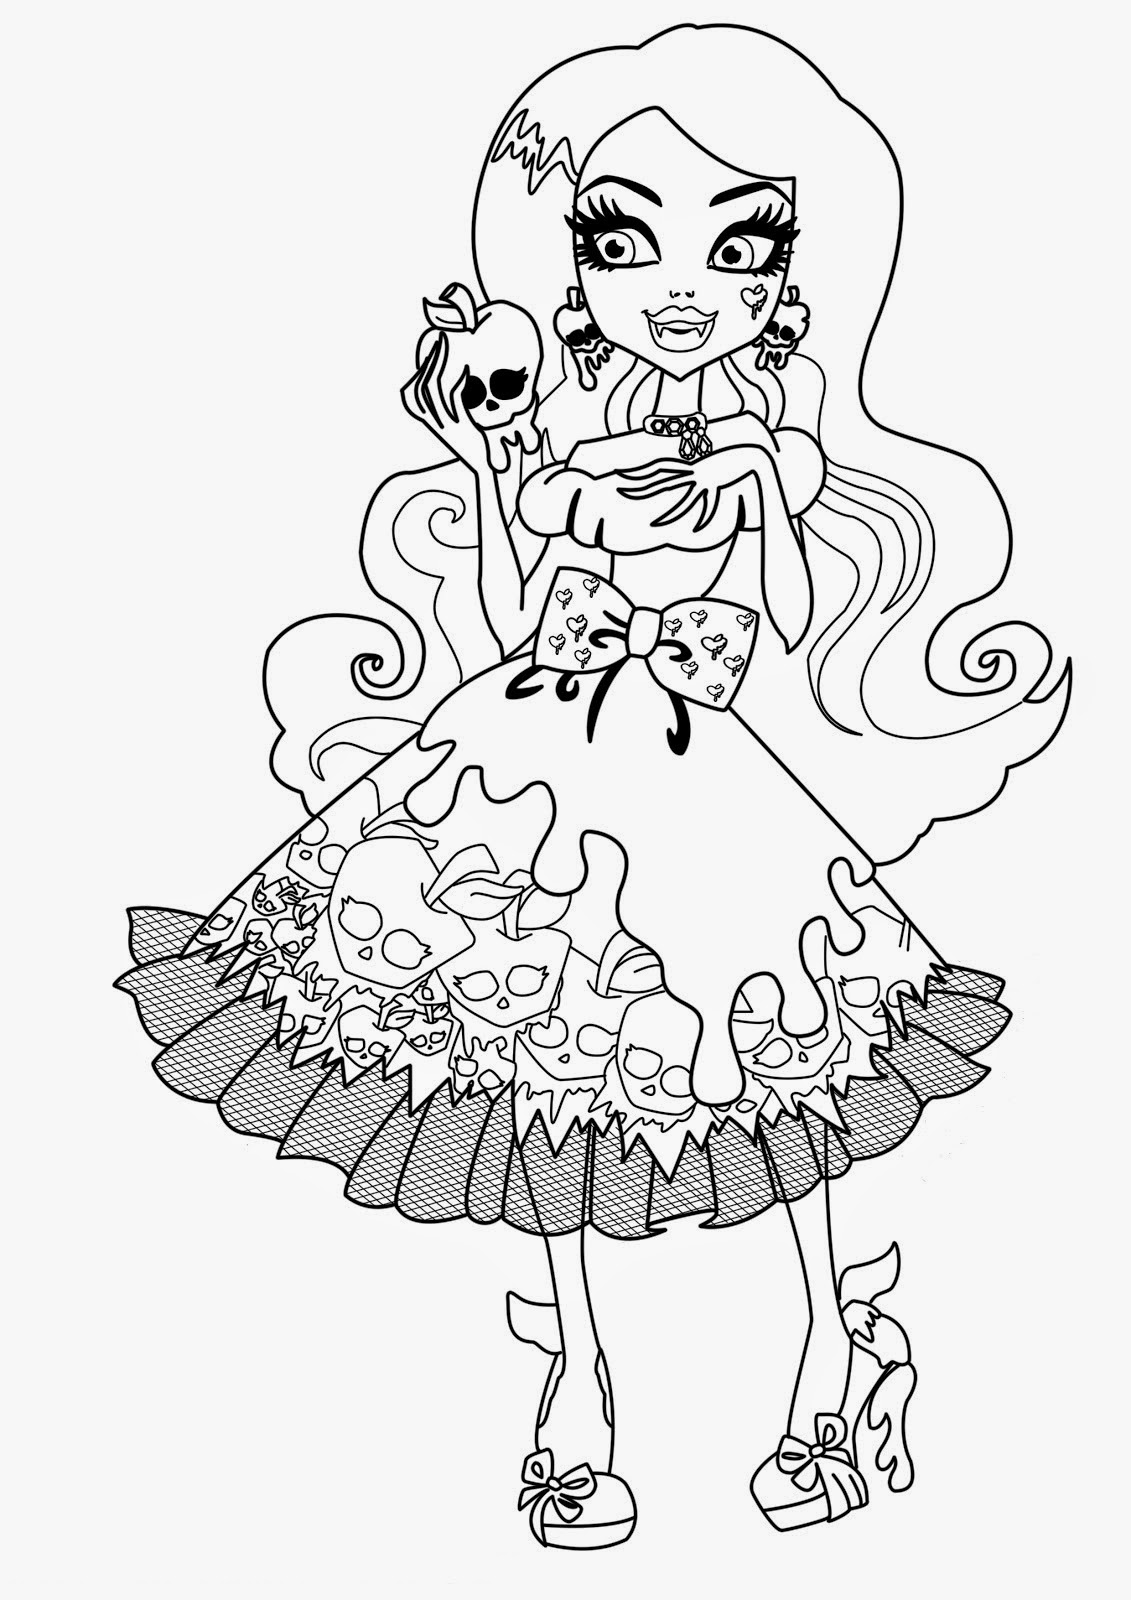 free monster high coloring pages to print free printable monster high coloring pages for kids pages monster to high print free coloring